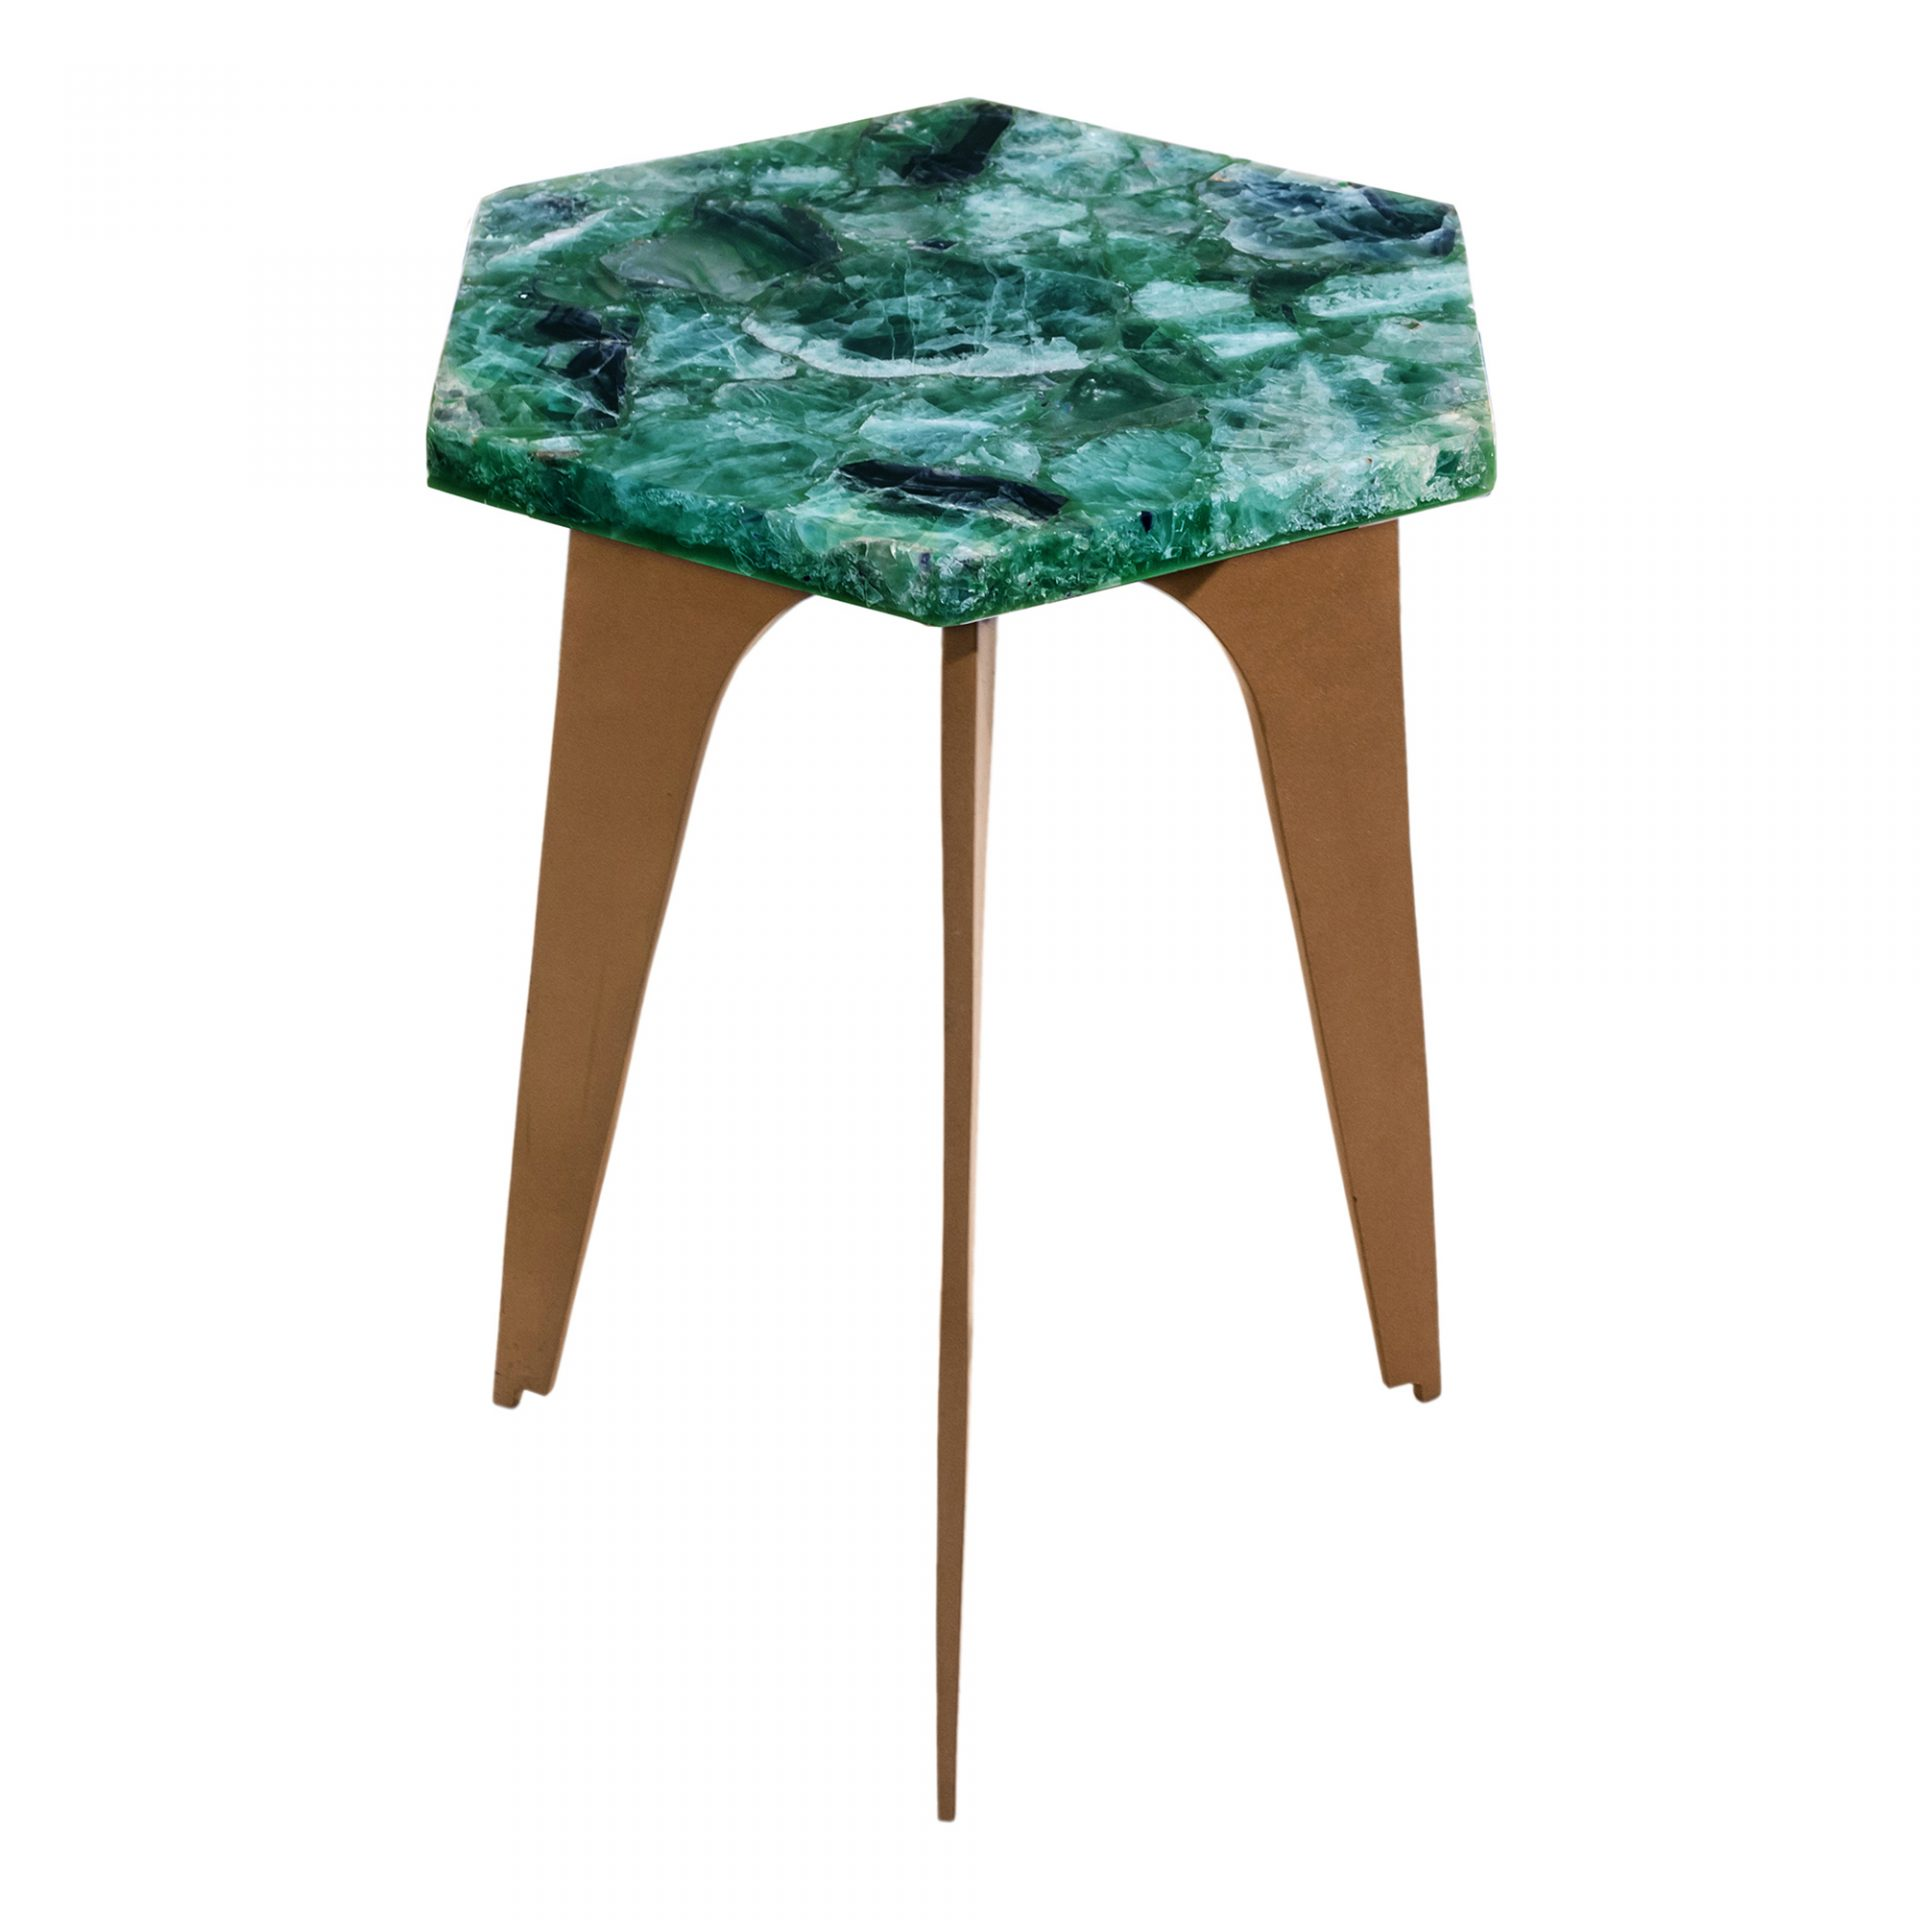 green fluorite accent table products moe whole metal tables teal chest wooden folding side solid wood corner vintage bedroom furniture contemporary round square trestle dining